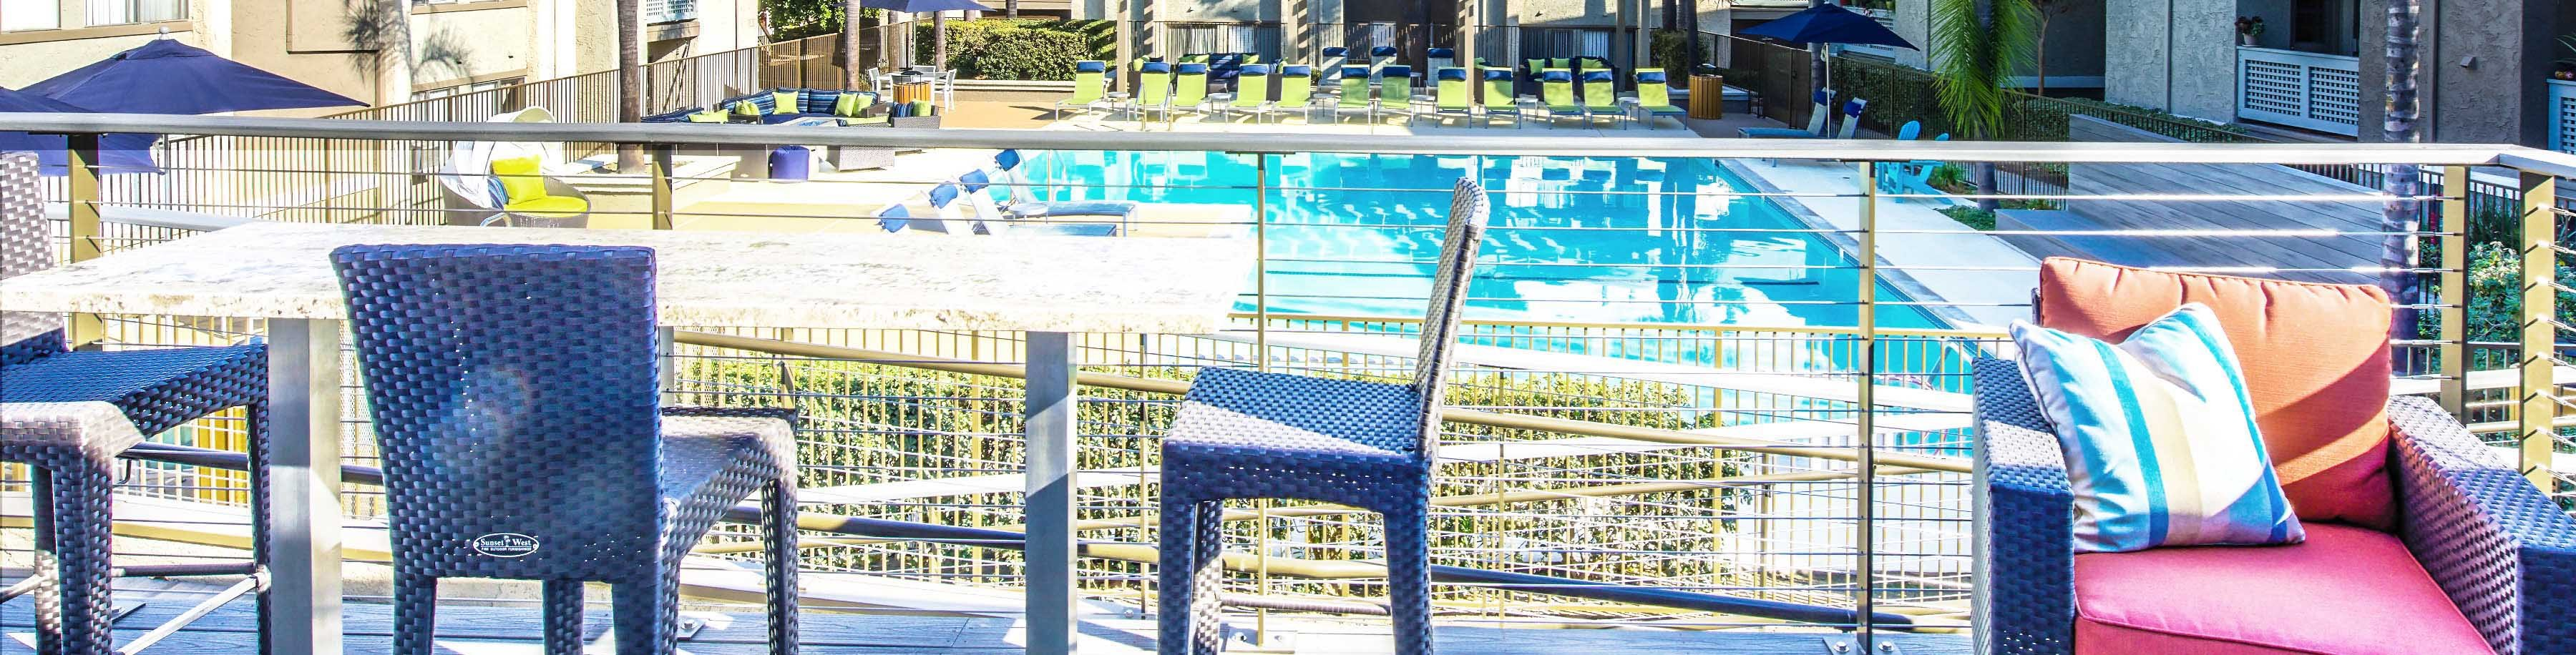 Outdoor Relaxing Area at The Verandas Apartments, West Covina, CA